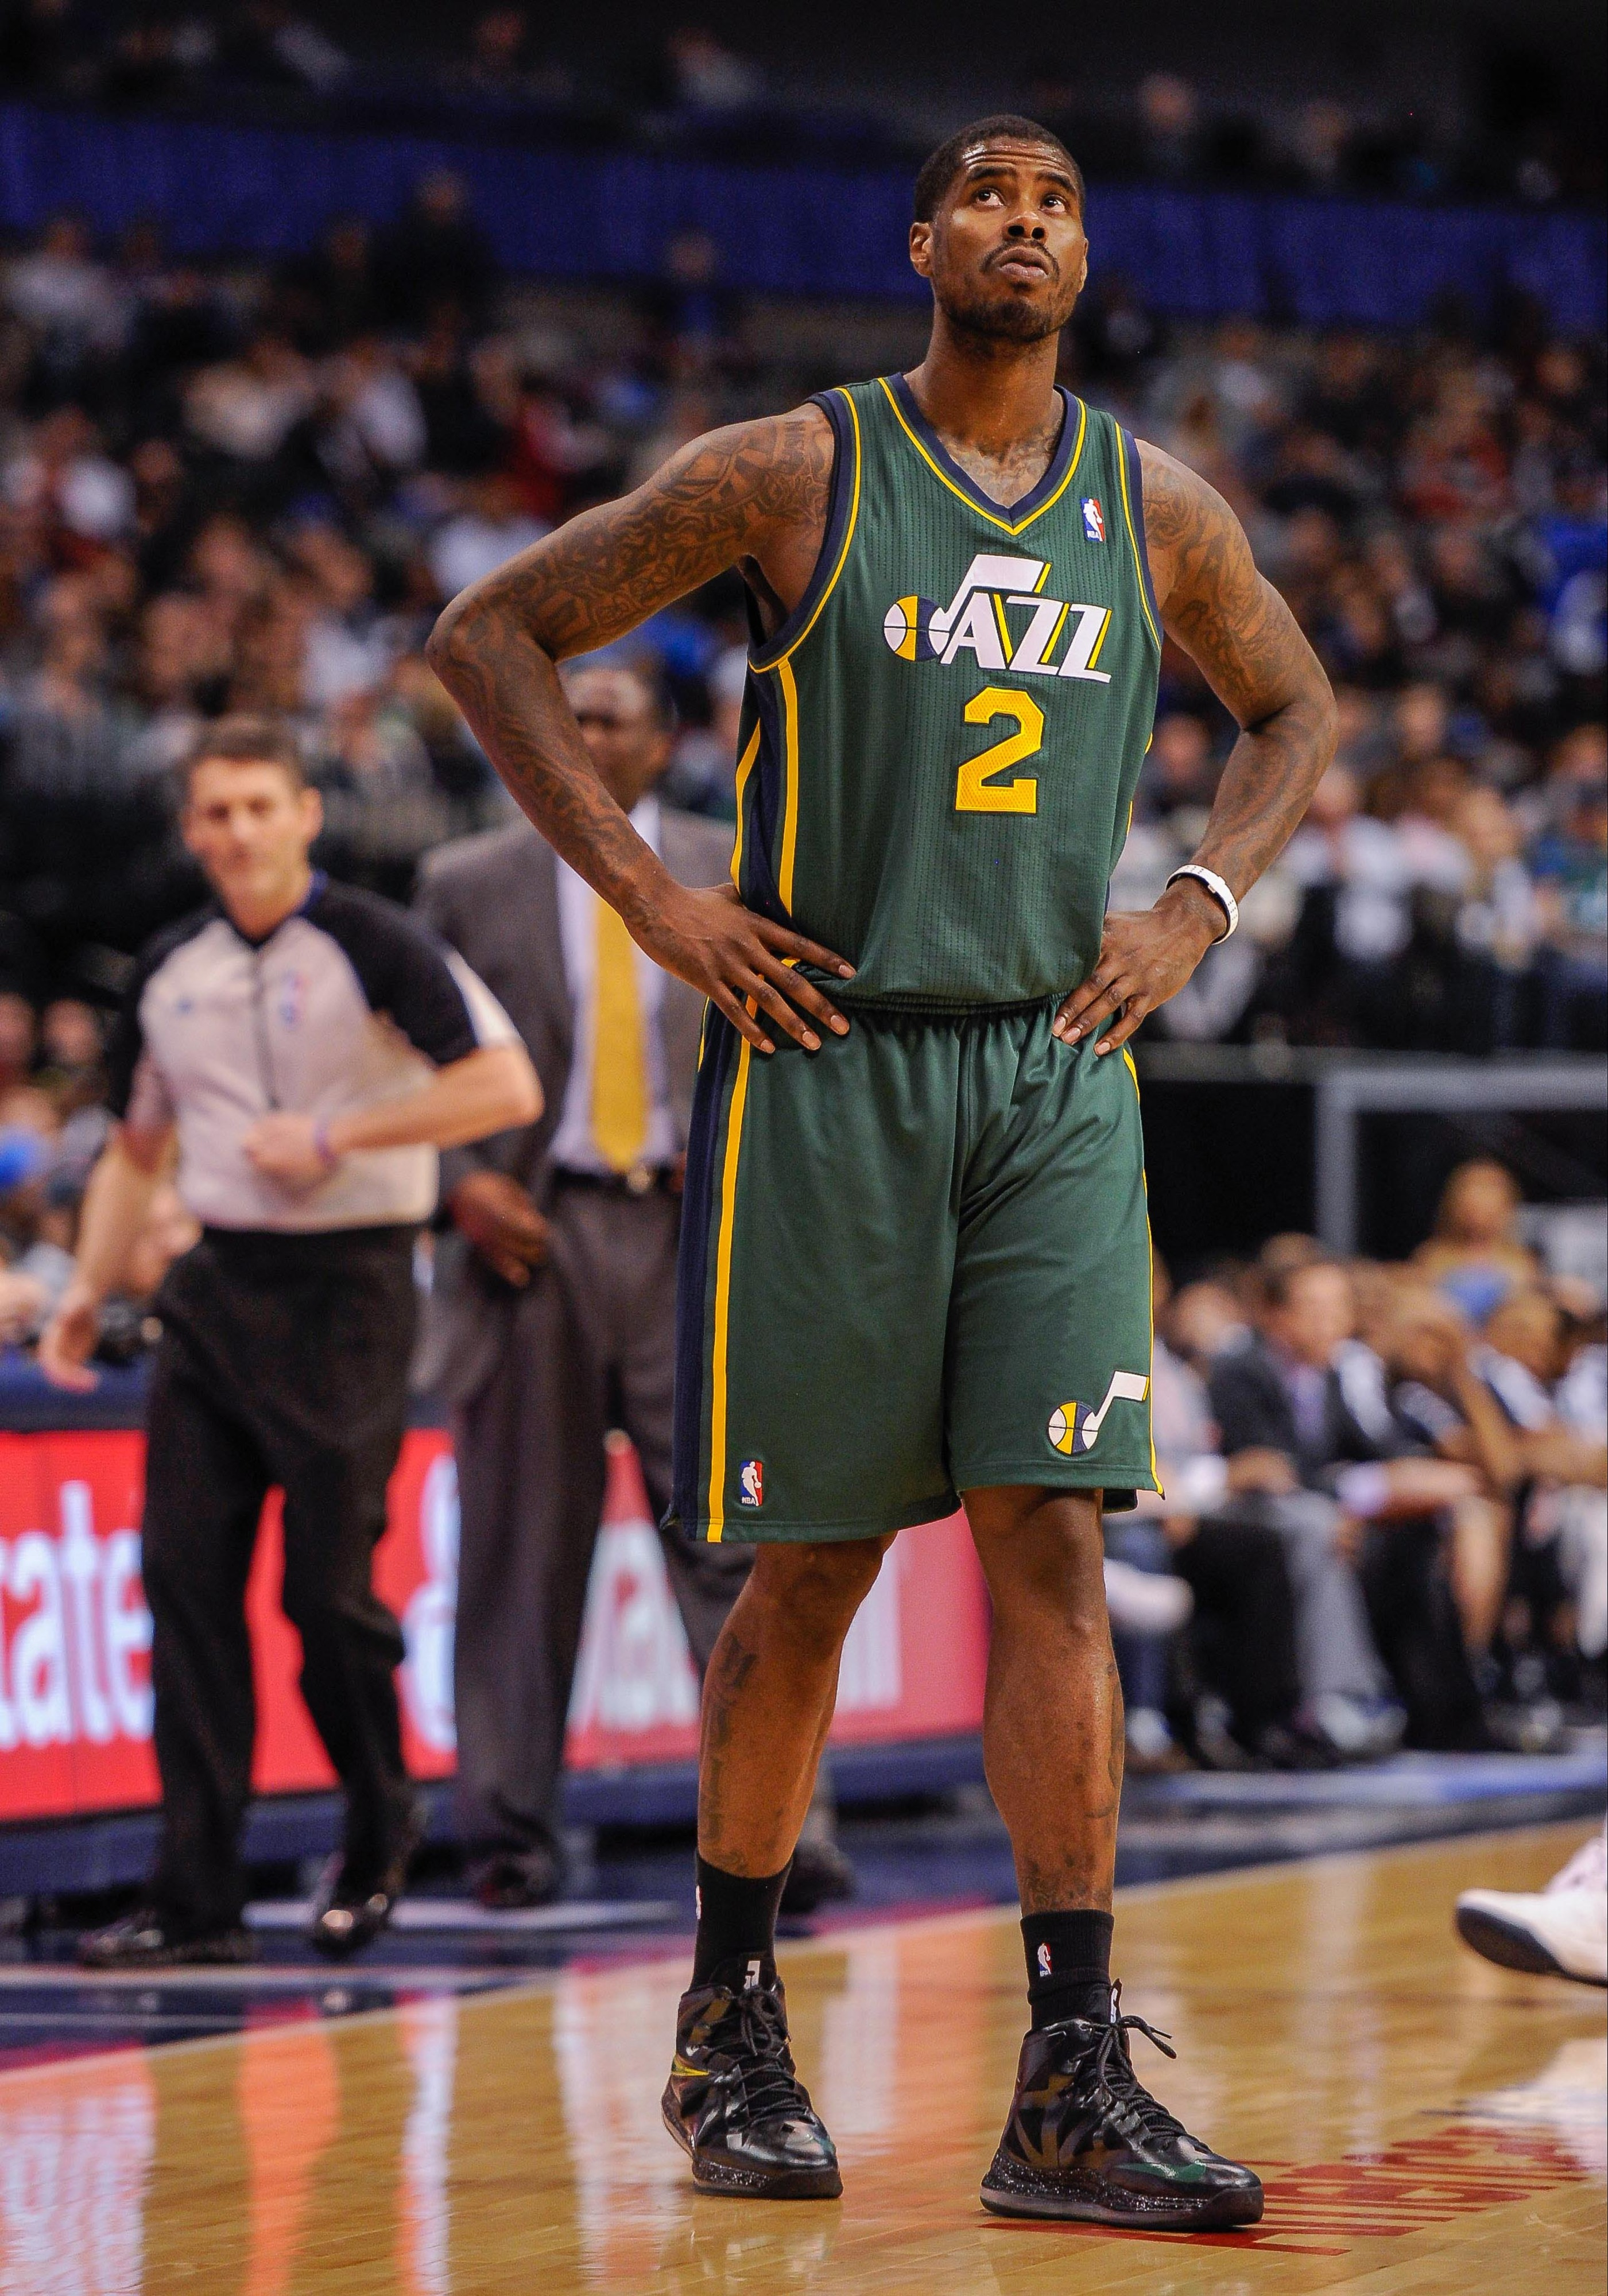 Marvin Williams to return to Jazz after declining termination option